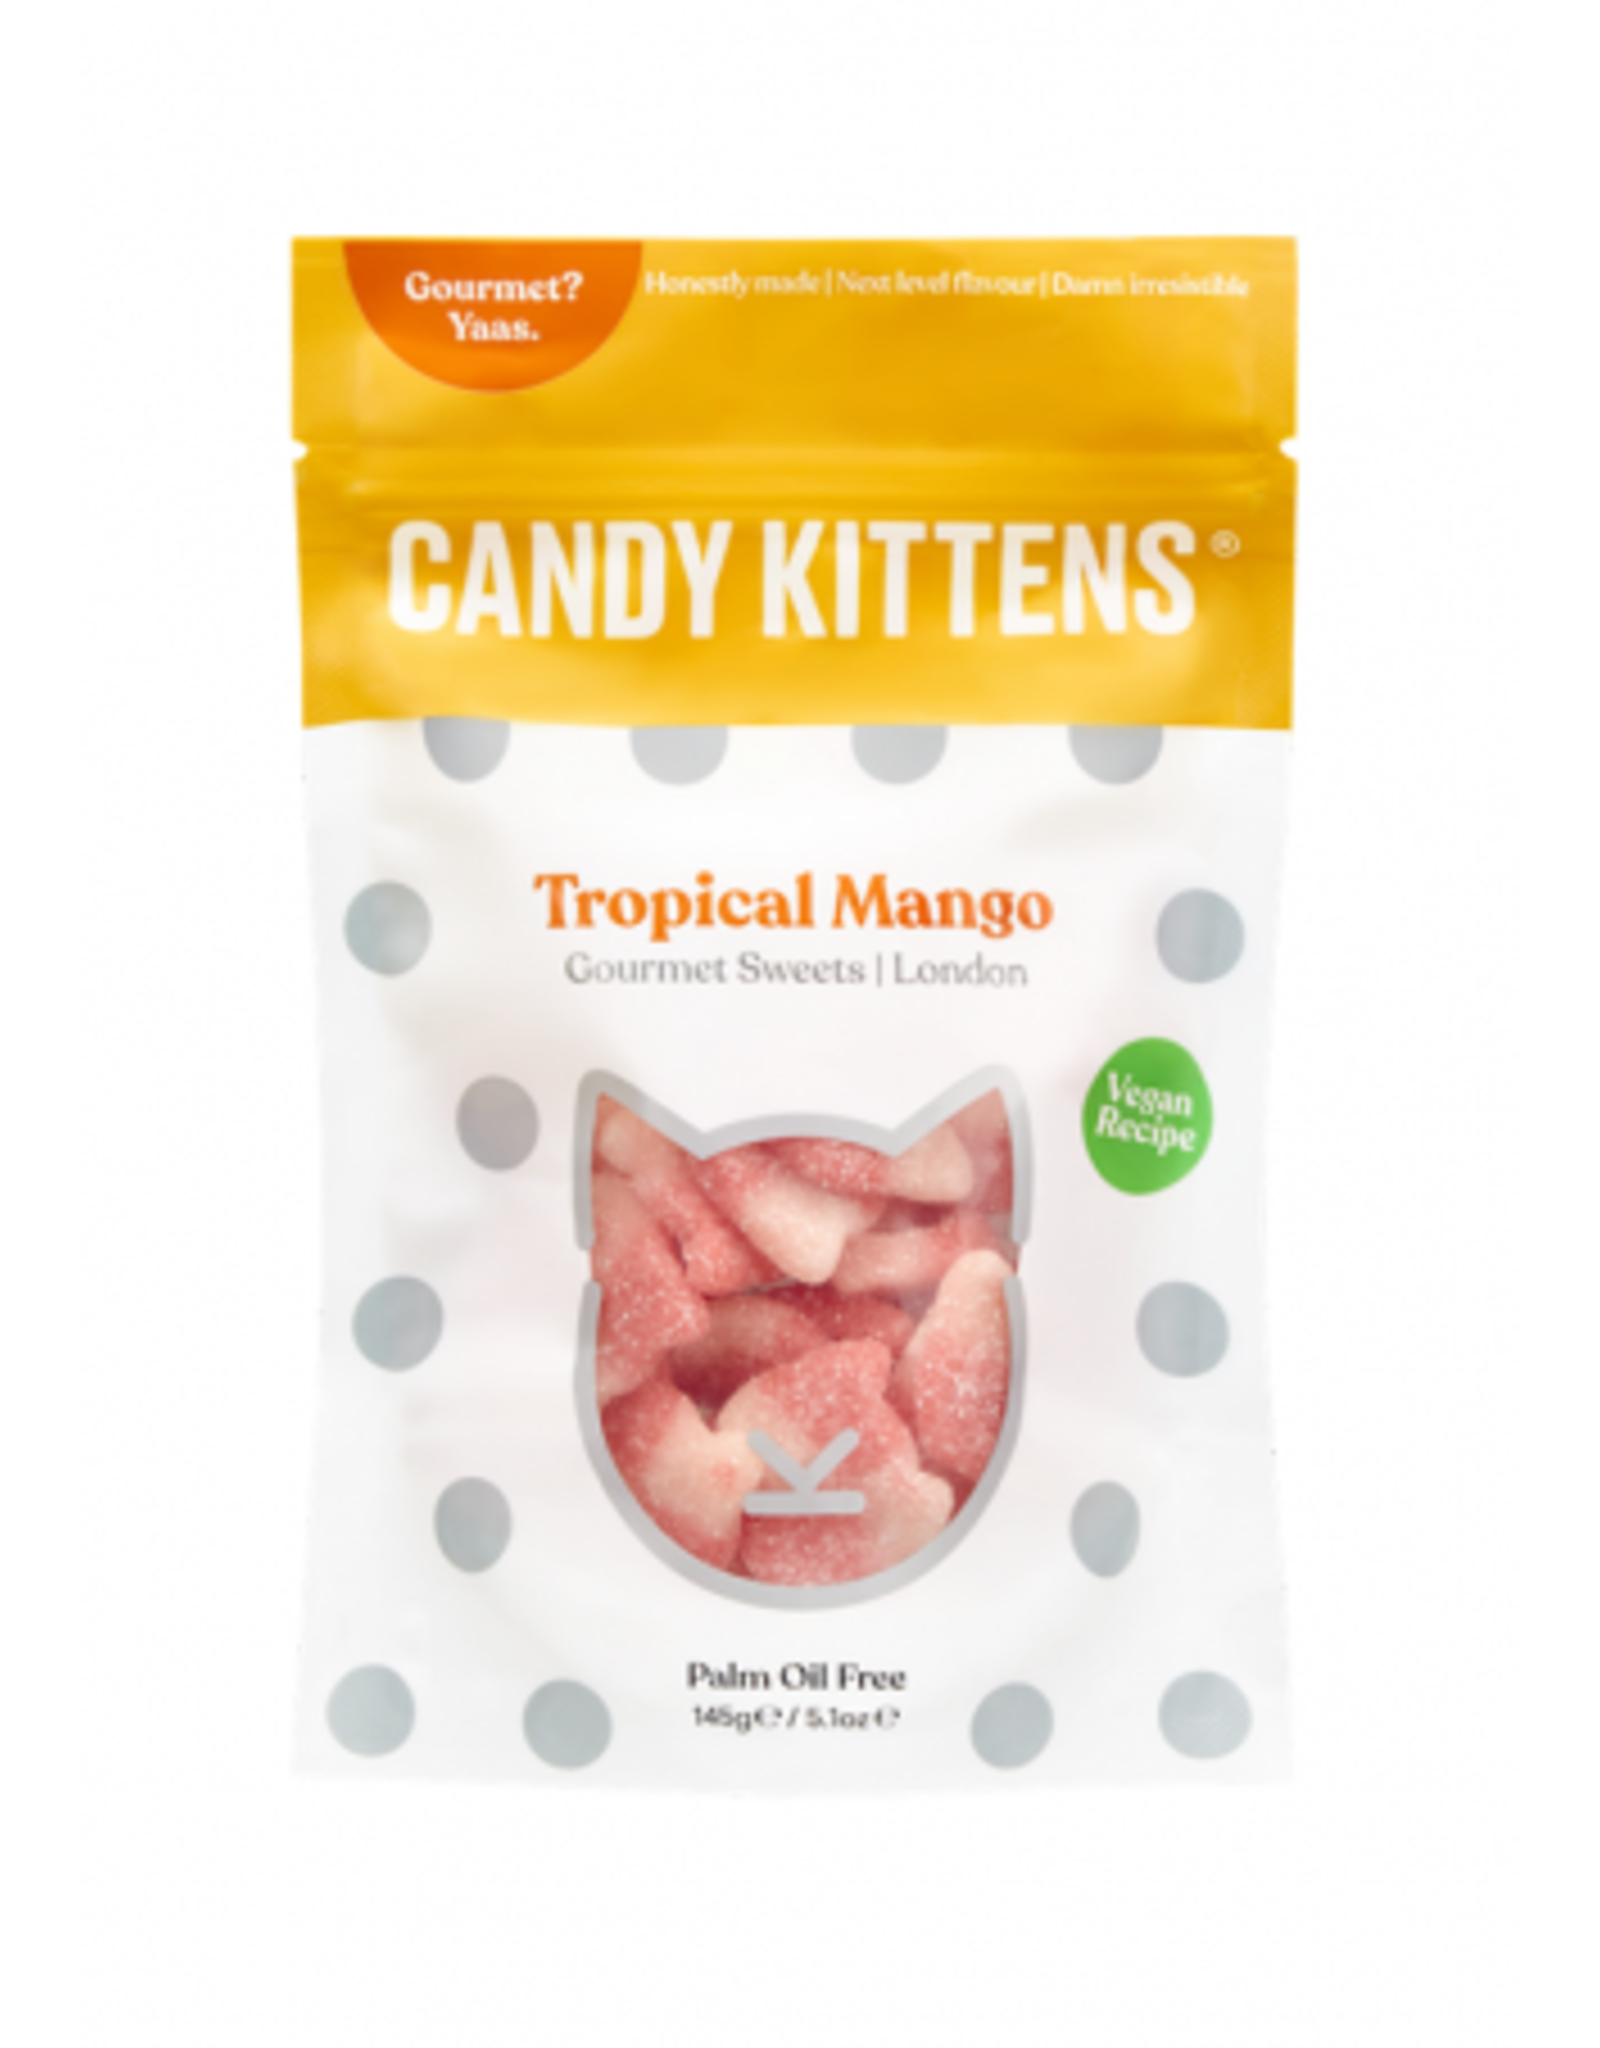 Candy Kittens Candy Kittens Tropical Mango 54g